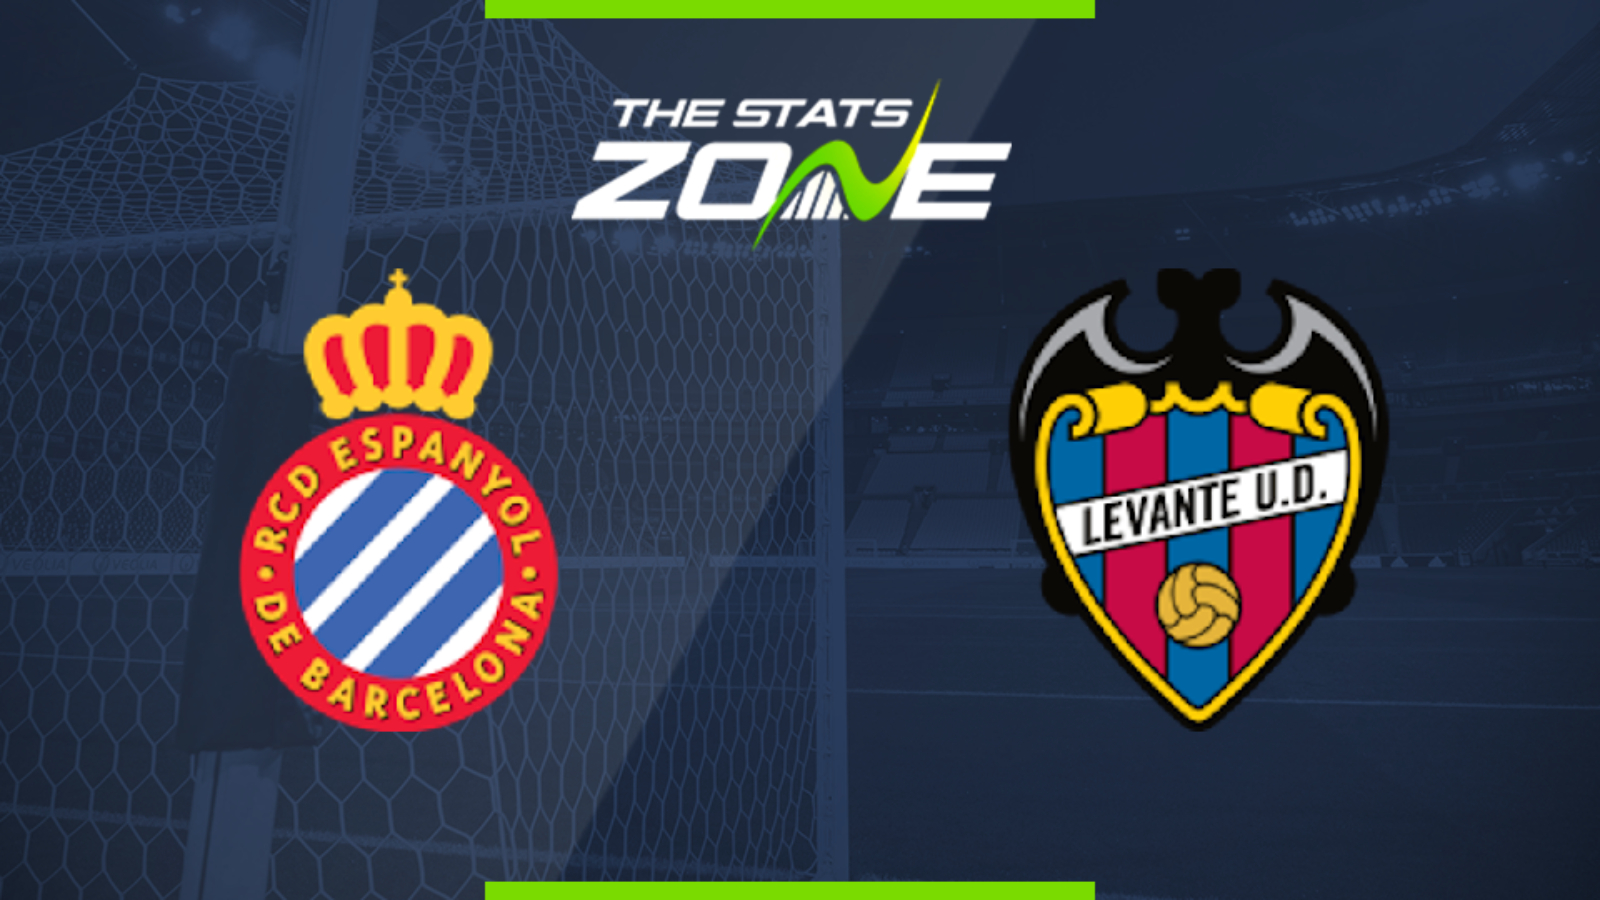 Levante v espanyol betting previews binary options banners for cheap